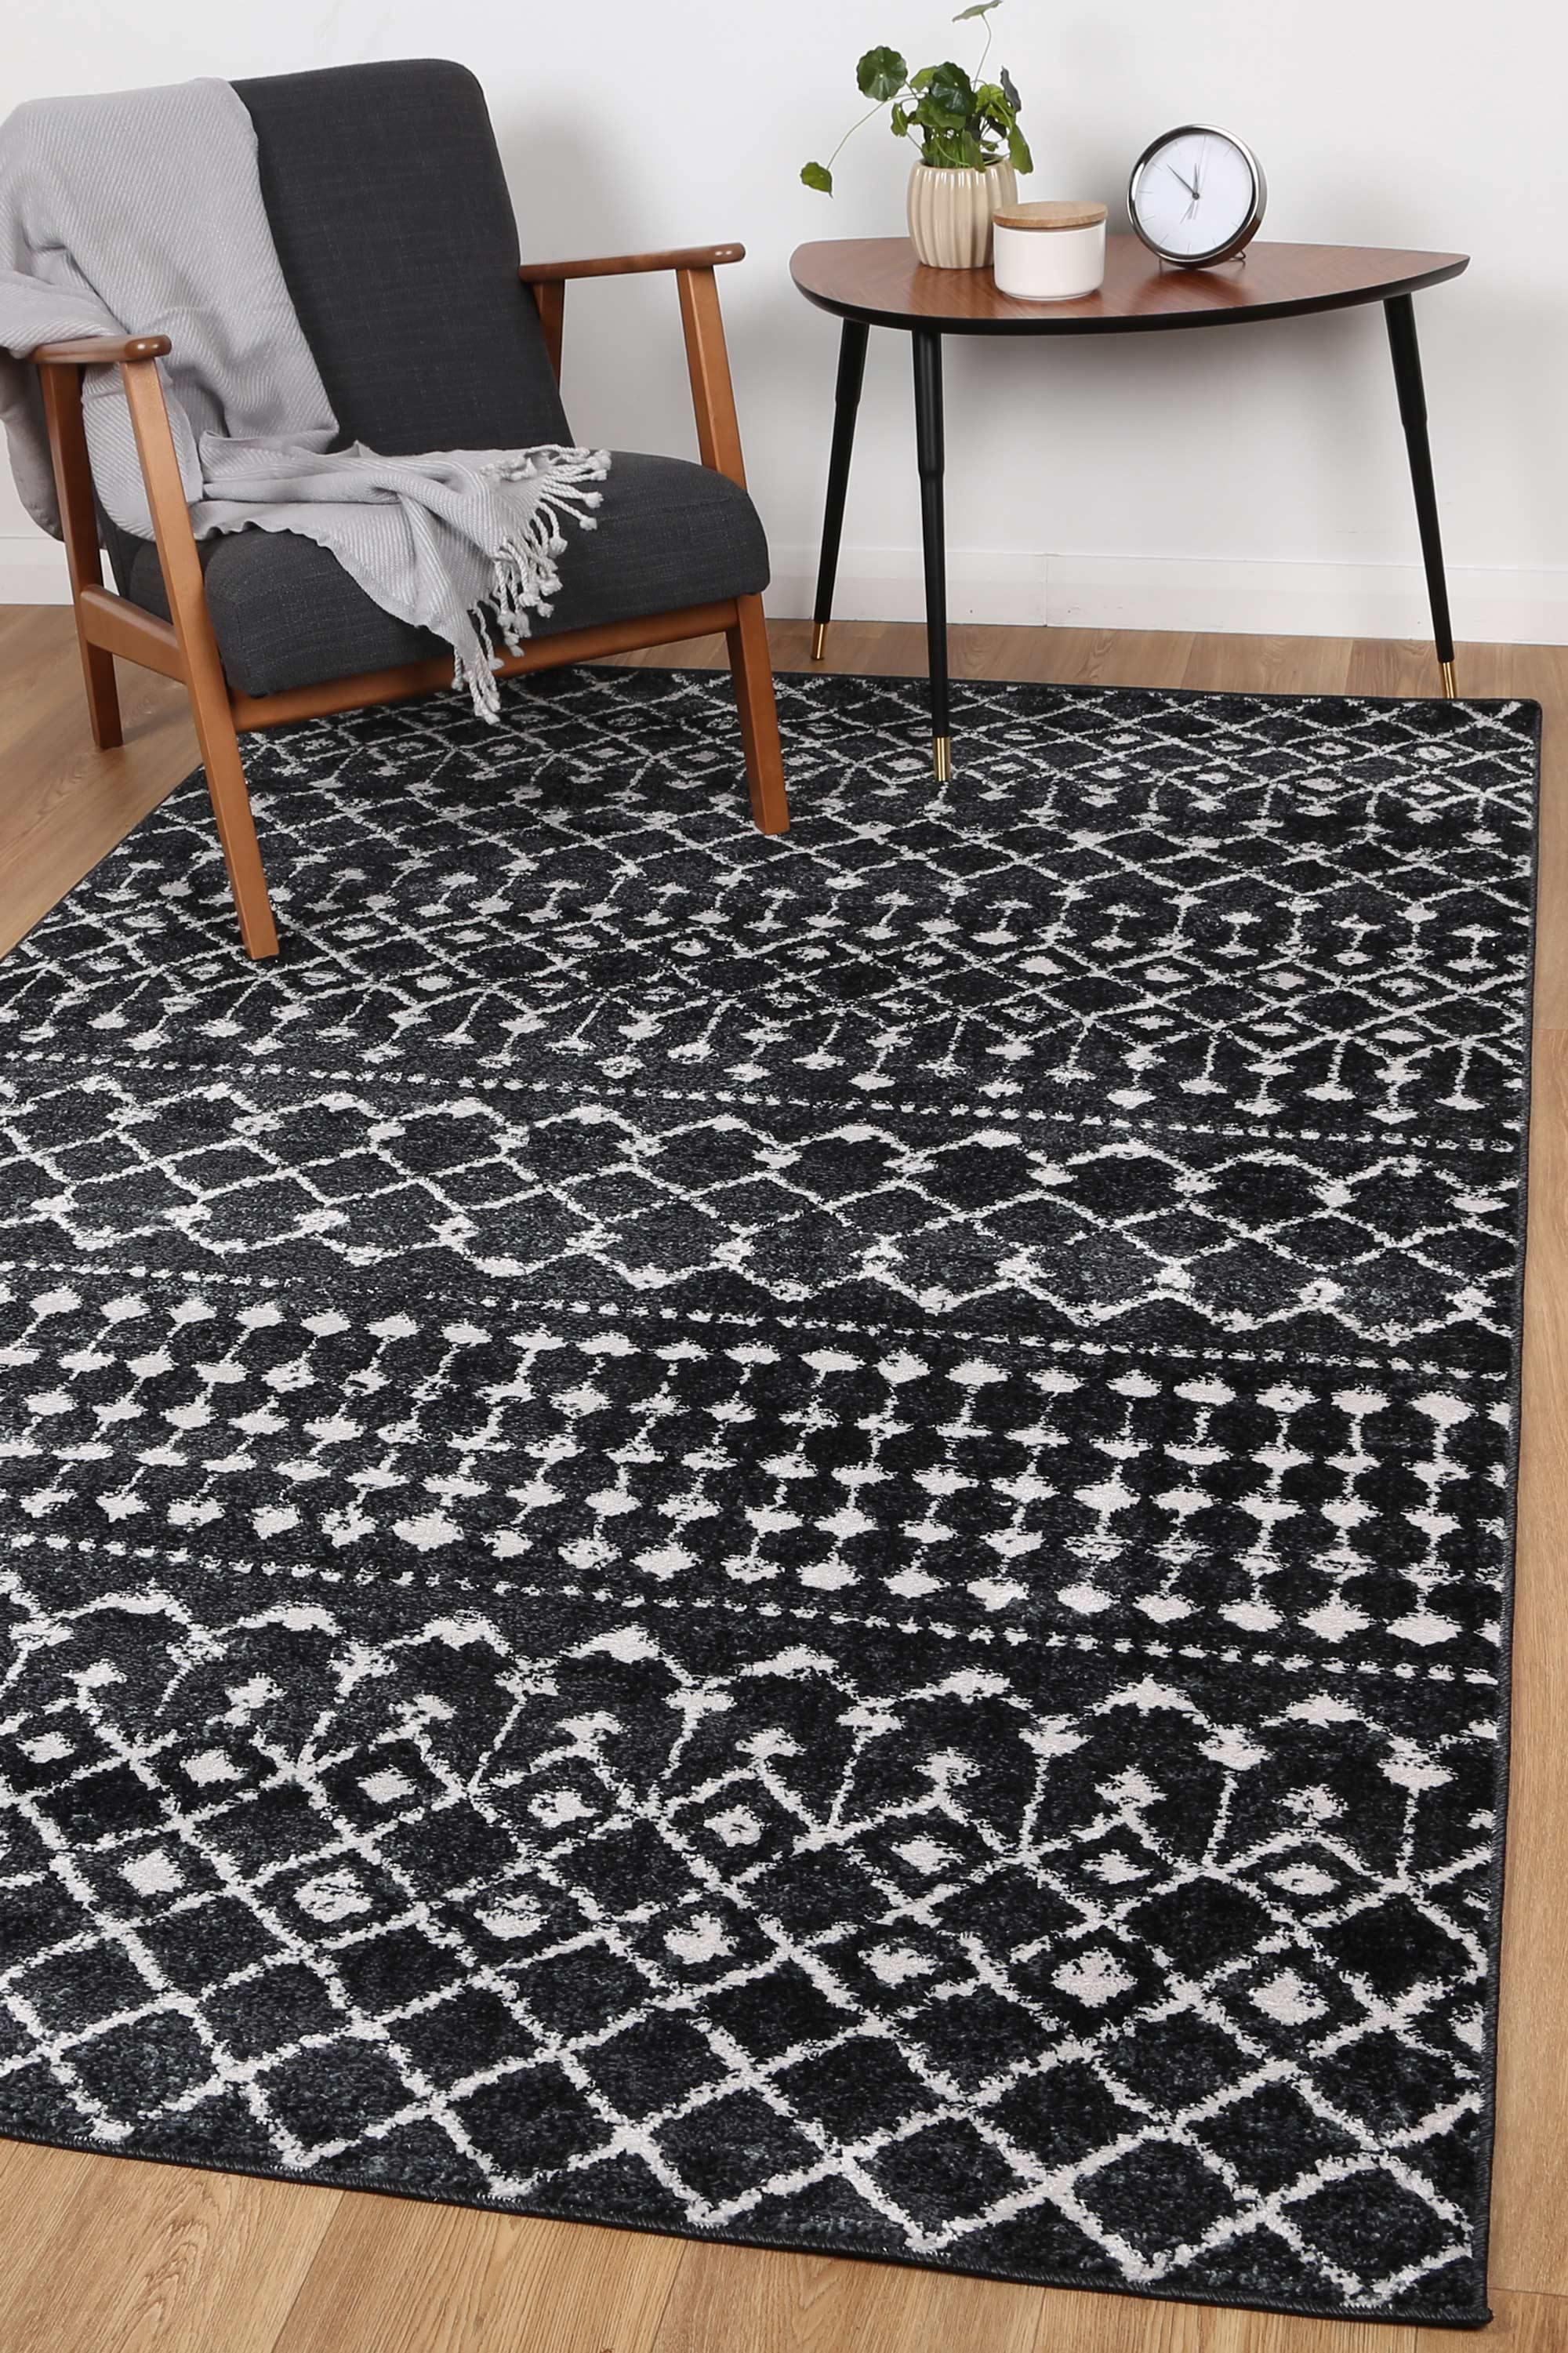 Alice Tribal Anthracite Rug - The Rugs